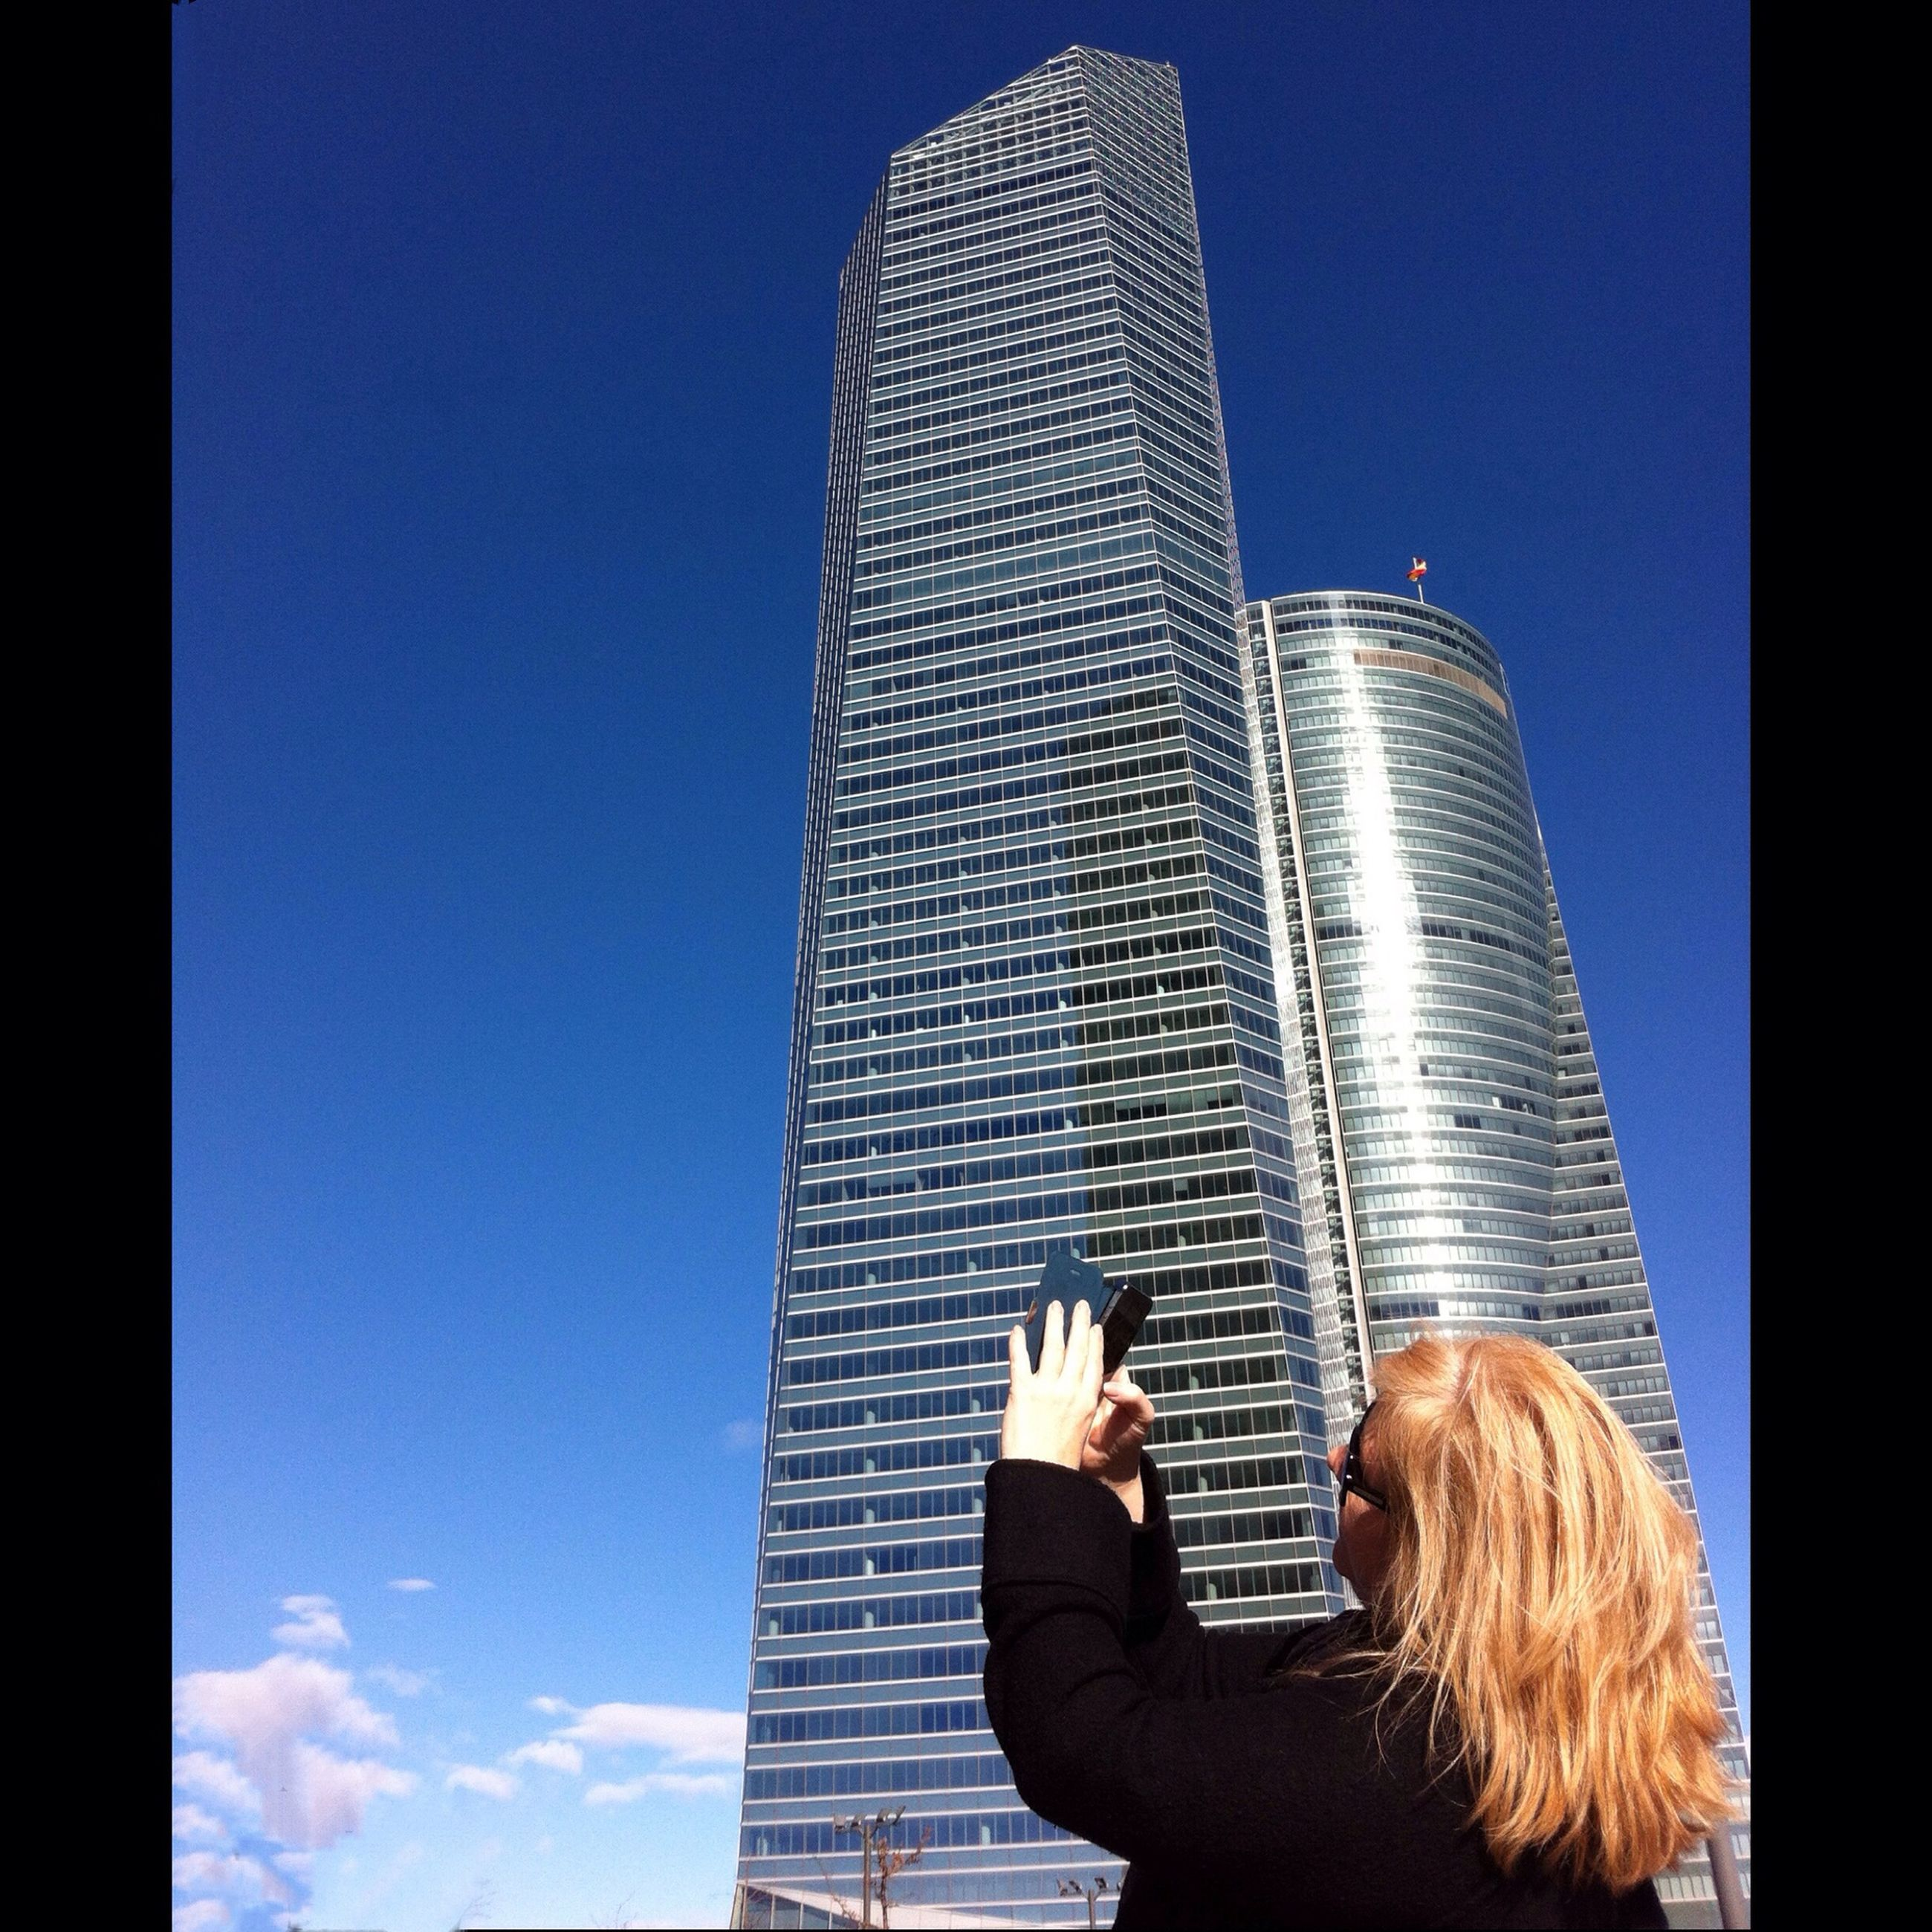 lifestyles, architecture, leisure activity, built structure, skyscraper, modern, building exterior, city, person, waist up, clear sky, tall - high, sitting, office building, men, sunlight, low angle view, indoors